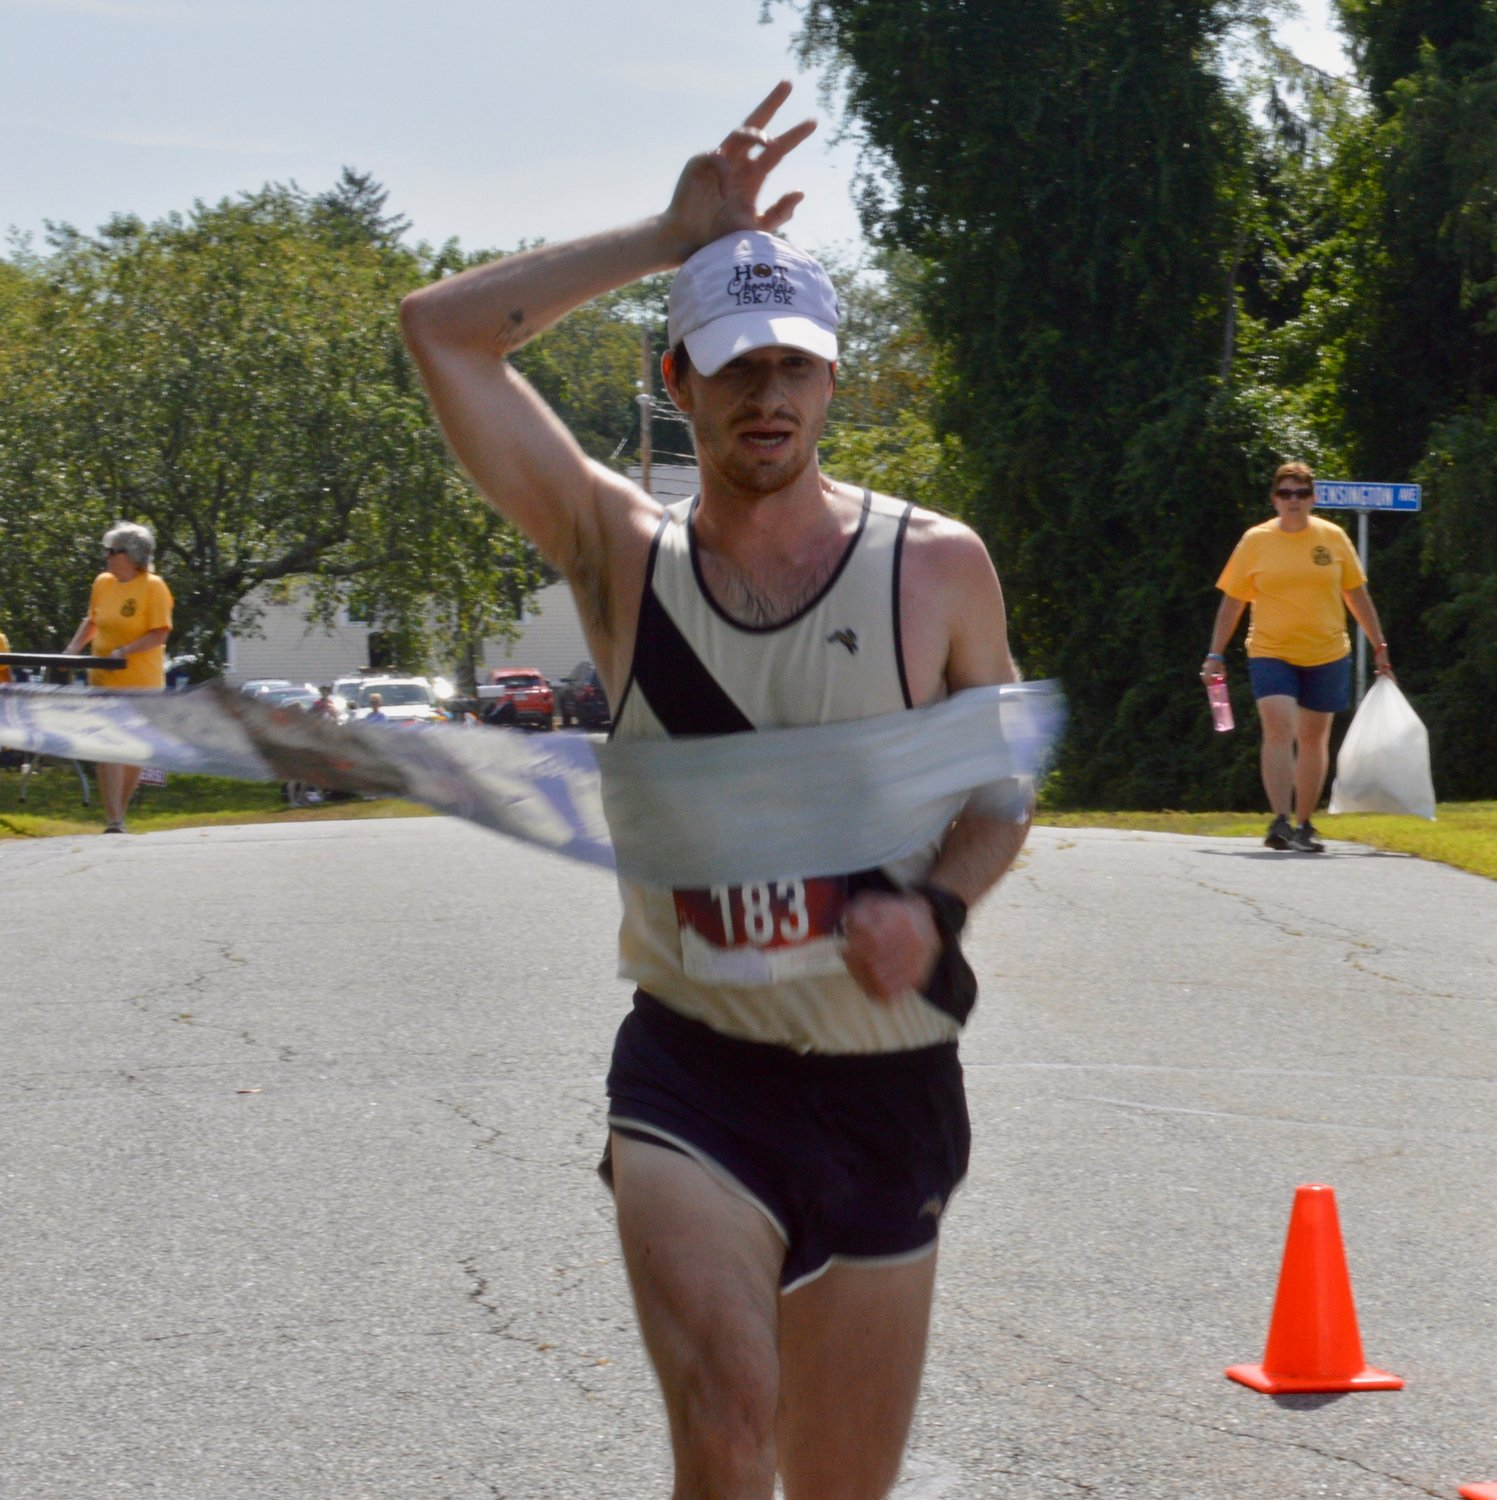 Luke O'Connor, 24, of Brookline, Mass., breaks the tape to win the Common Fence Point 5 Miler on Sunday. He finished the course in 26 minutes, 44 seconds.